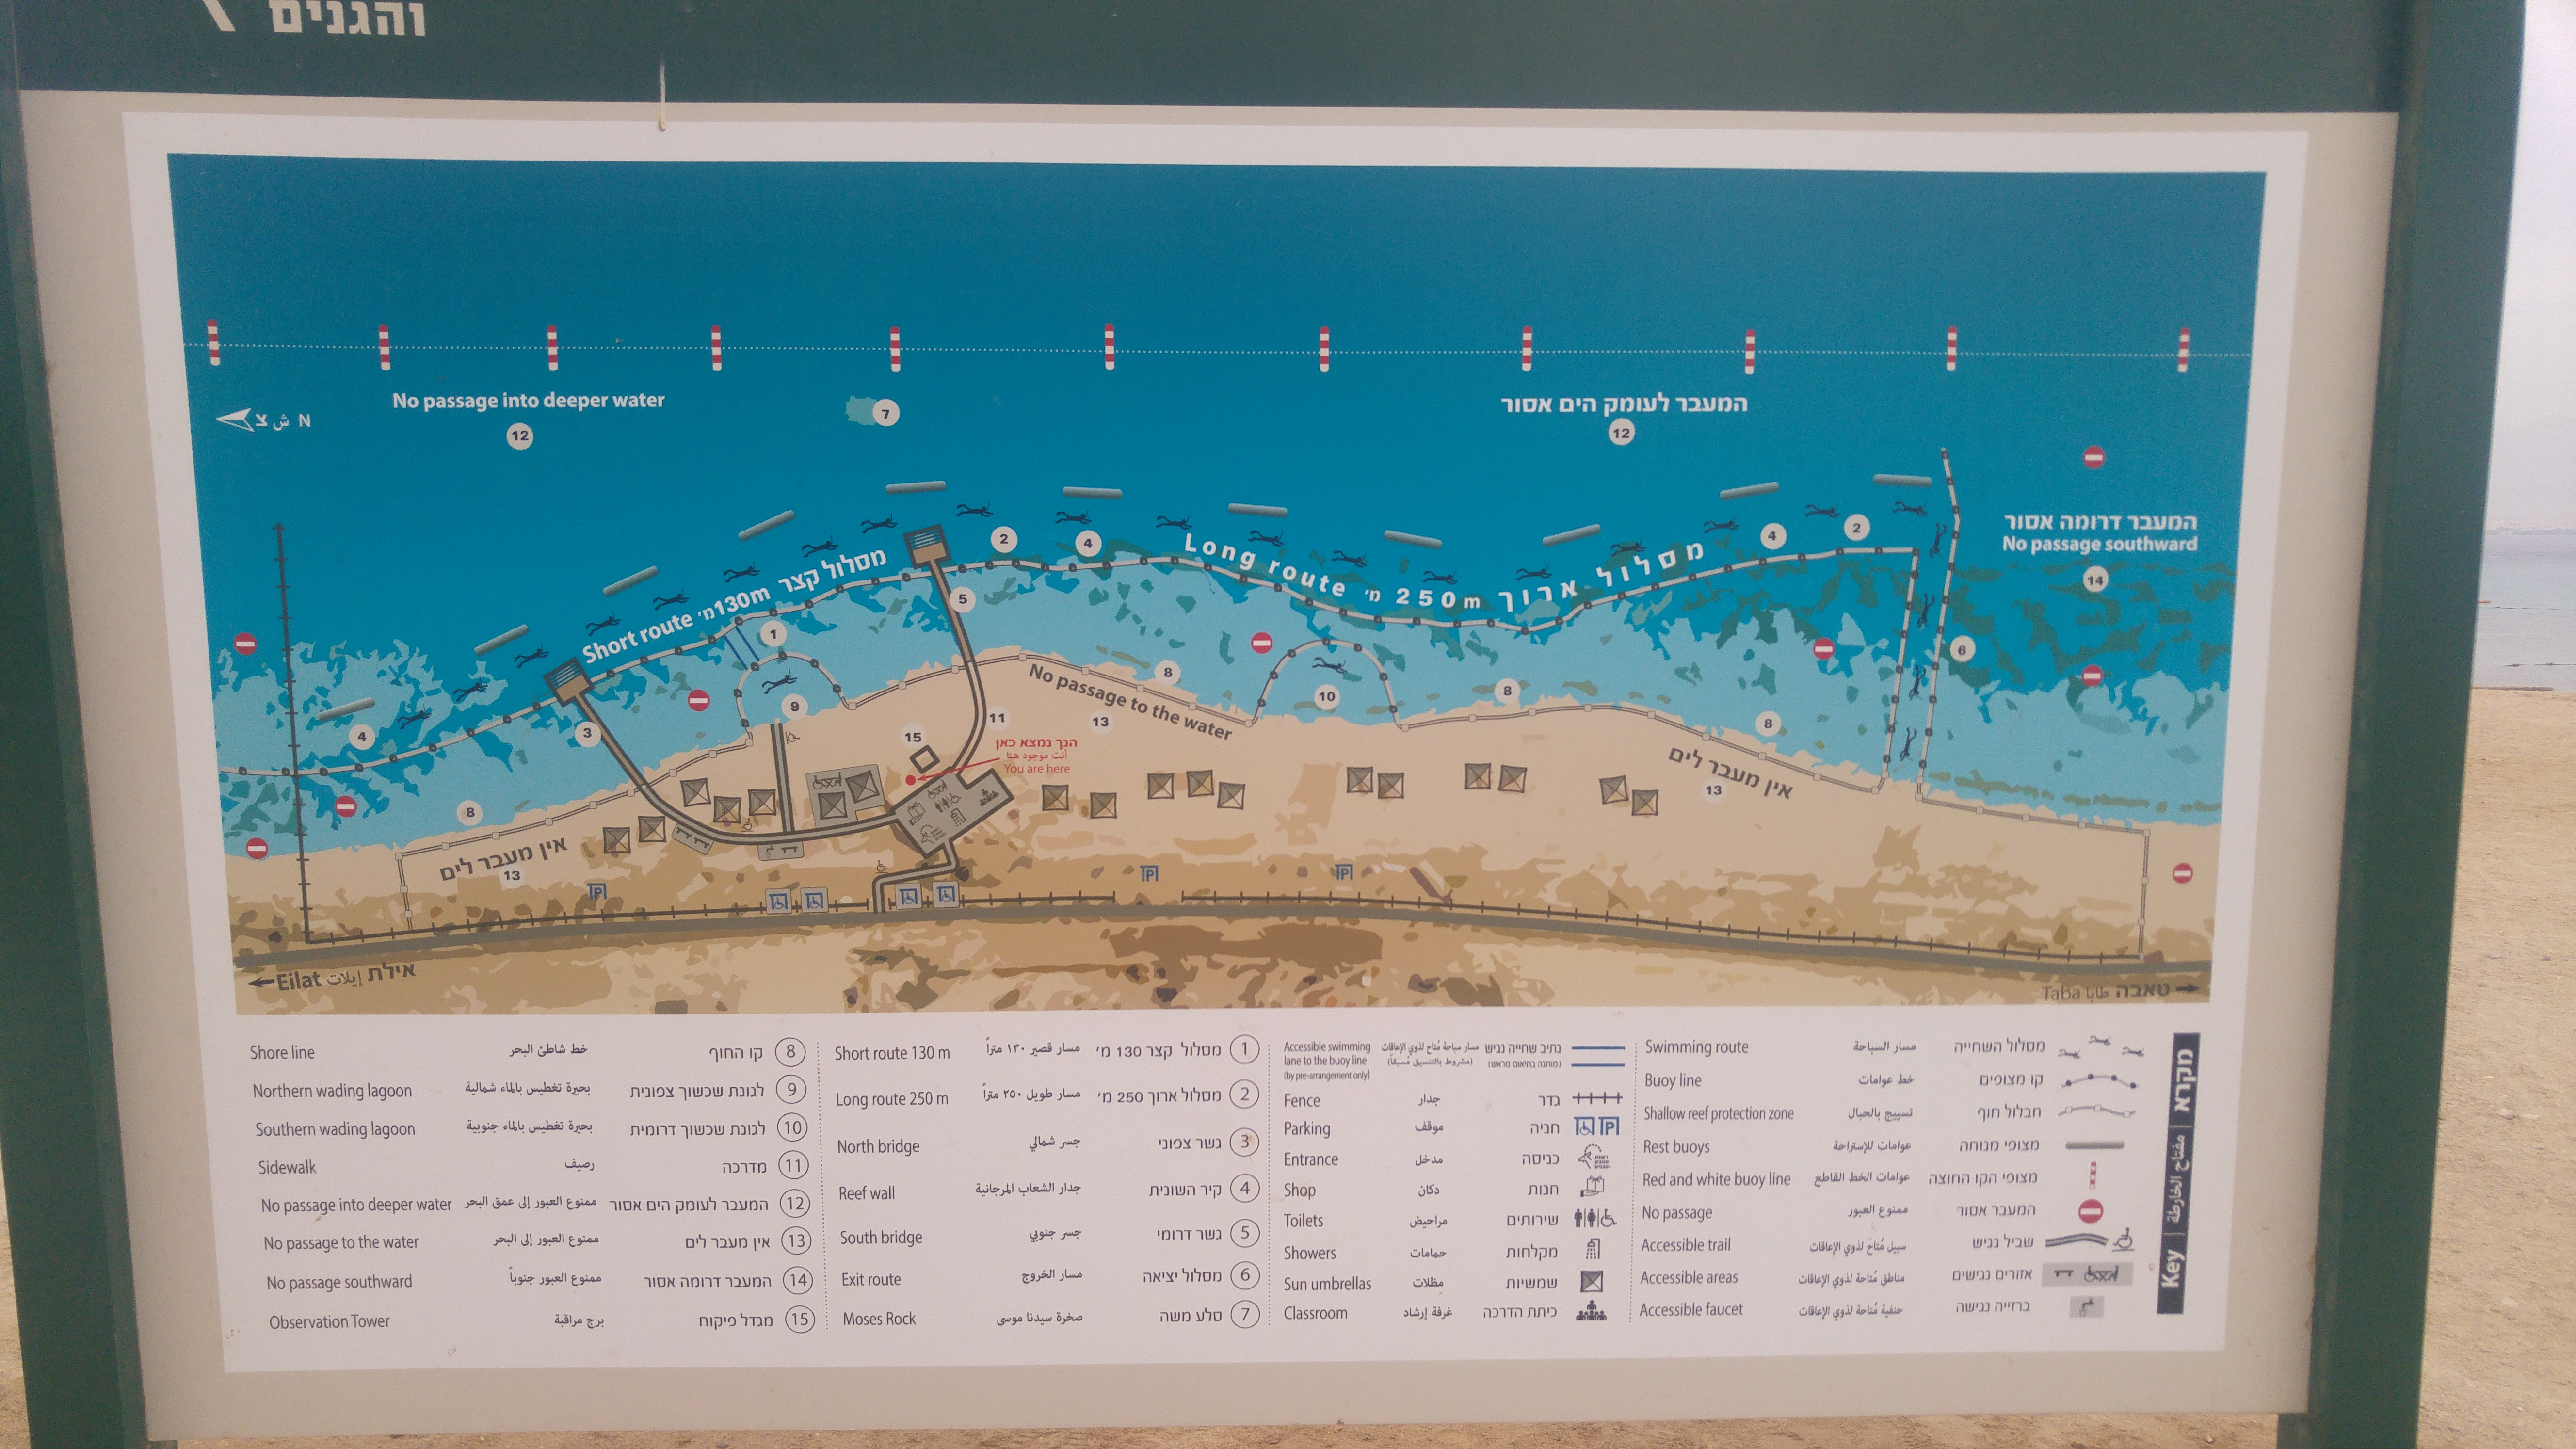 FileEilat coral reef nature reserve map at sitejpg Wikimedia Commons